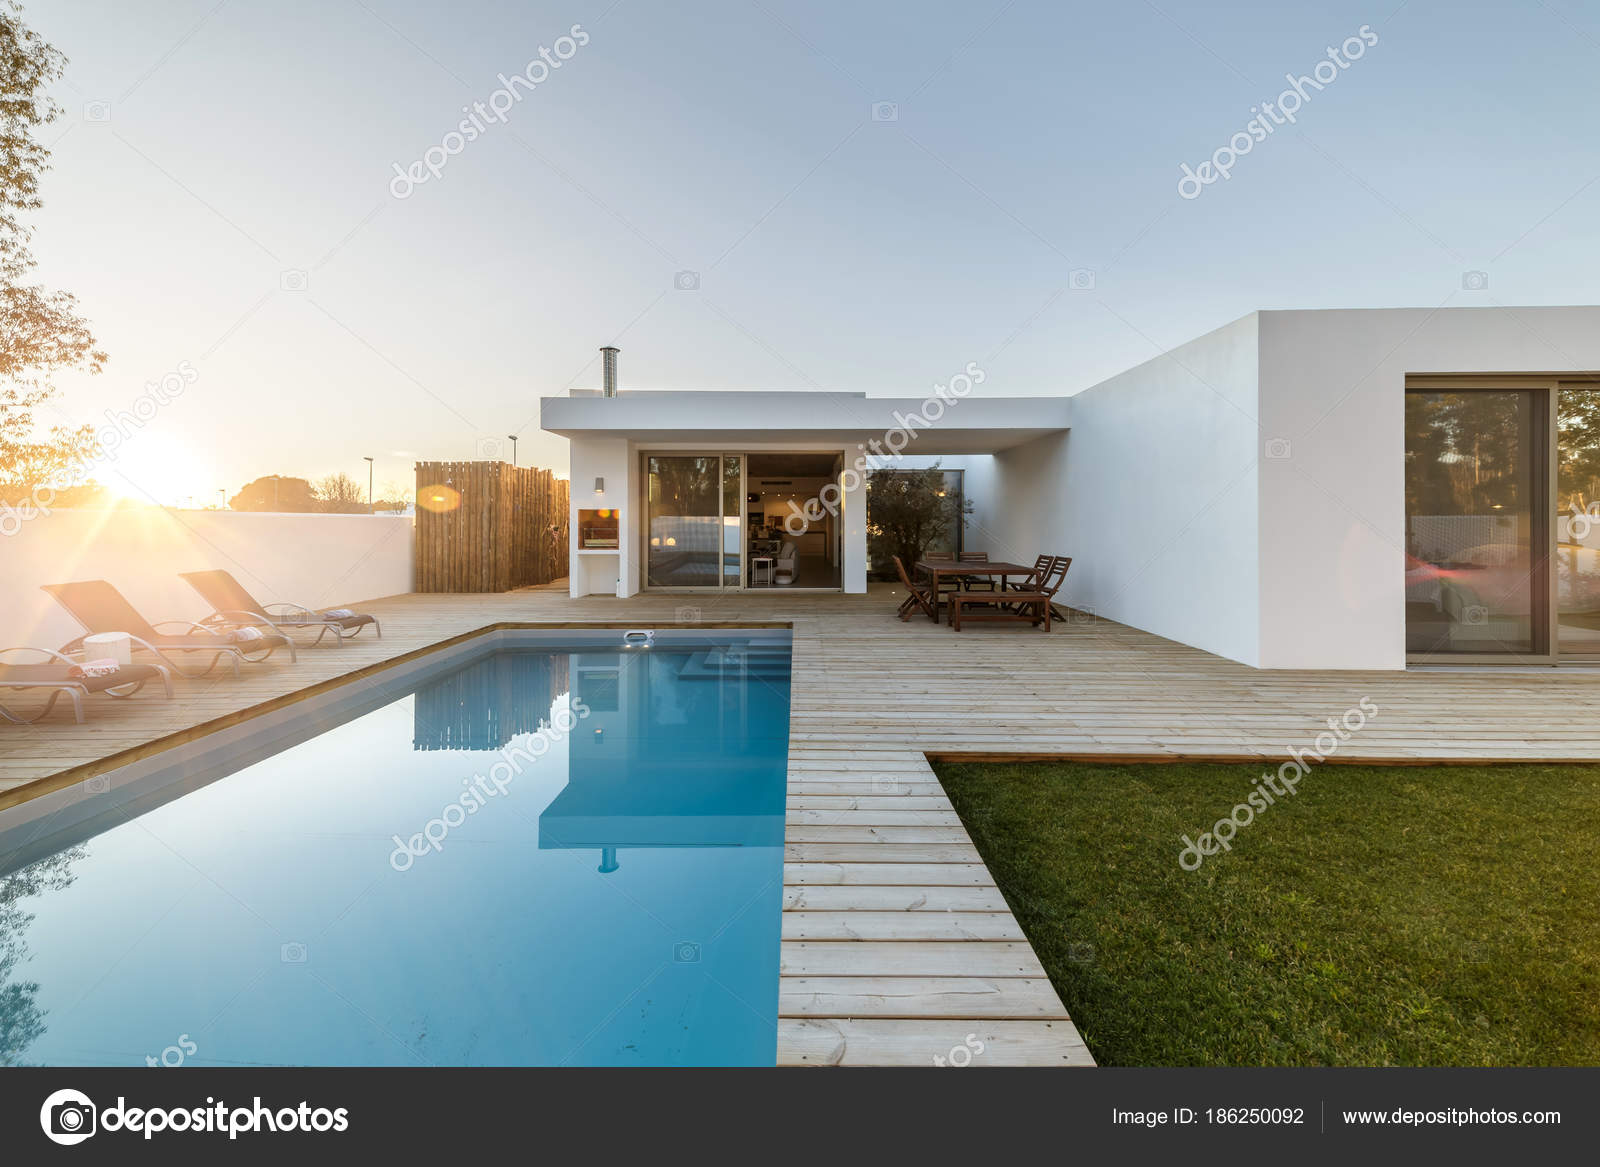 Modern House With Garden Swimming Pool And Wooden Deck Stock Photo Image By Papandreos 186250092